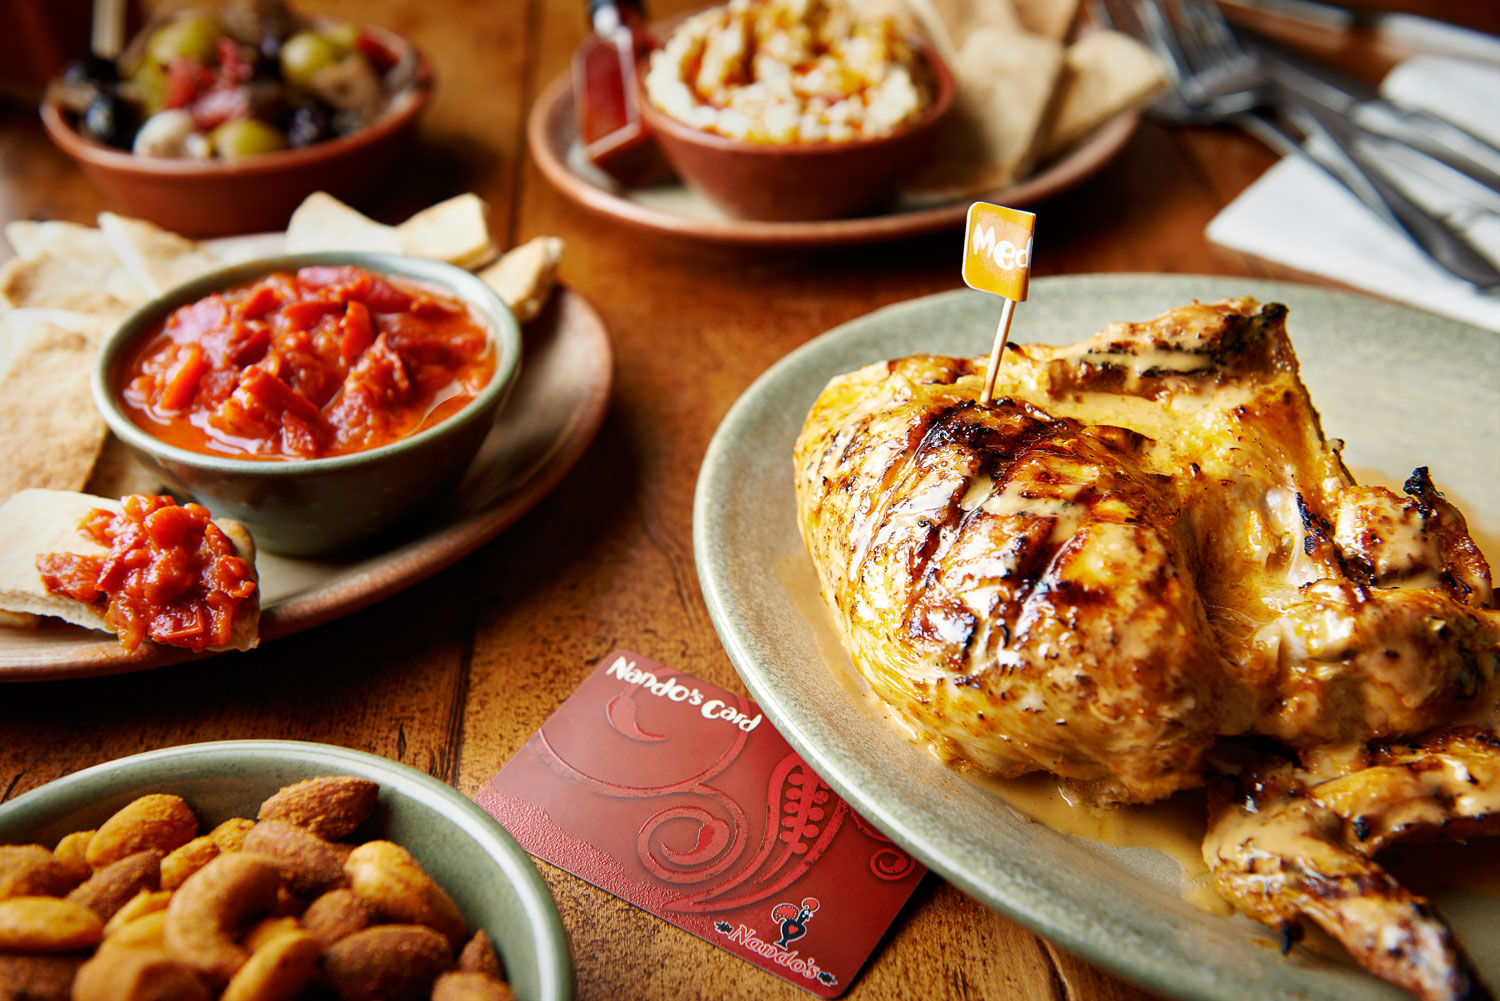 food photography london food photographer london recipe advertising cook book cook editorial packaging design graphic bold bright vibrant lighting lit flash photoshop still life photographer photography still-life still-life restaurant   dinner lunch breakfast meal cooking nando nandos nando's chicken  quarter half whole sauce grilled flame fried plate platter pita pitta dip red pepper salsa nuts olives table selection